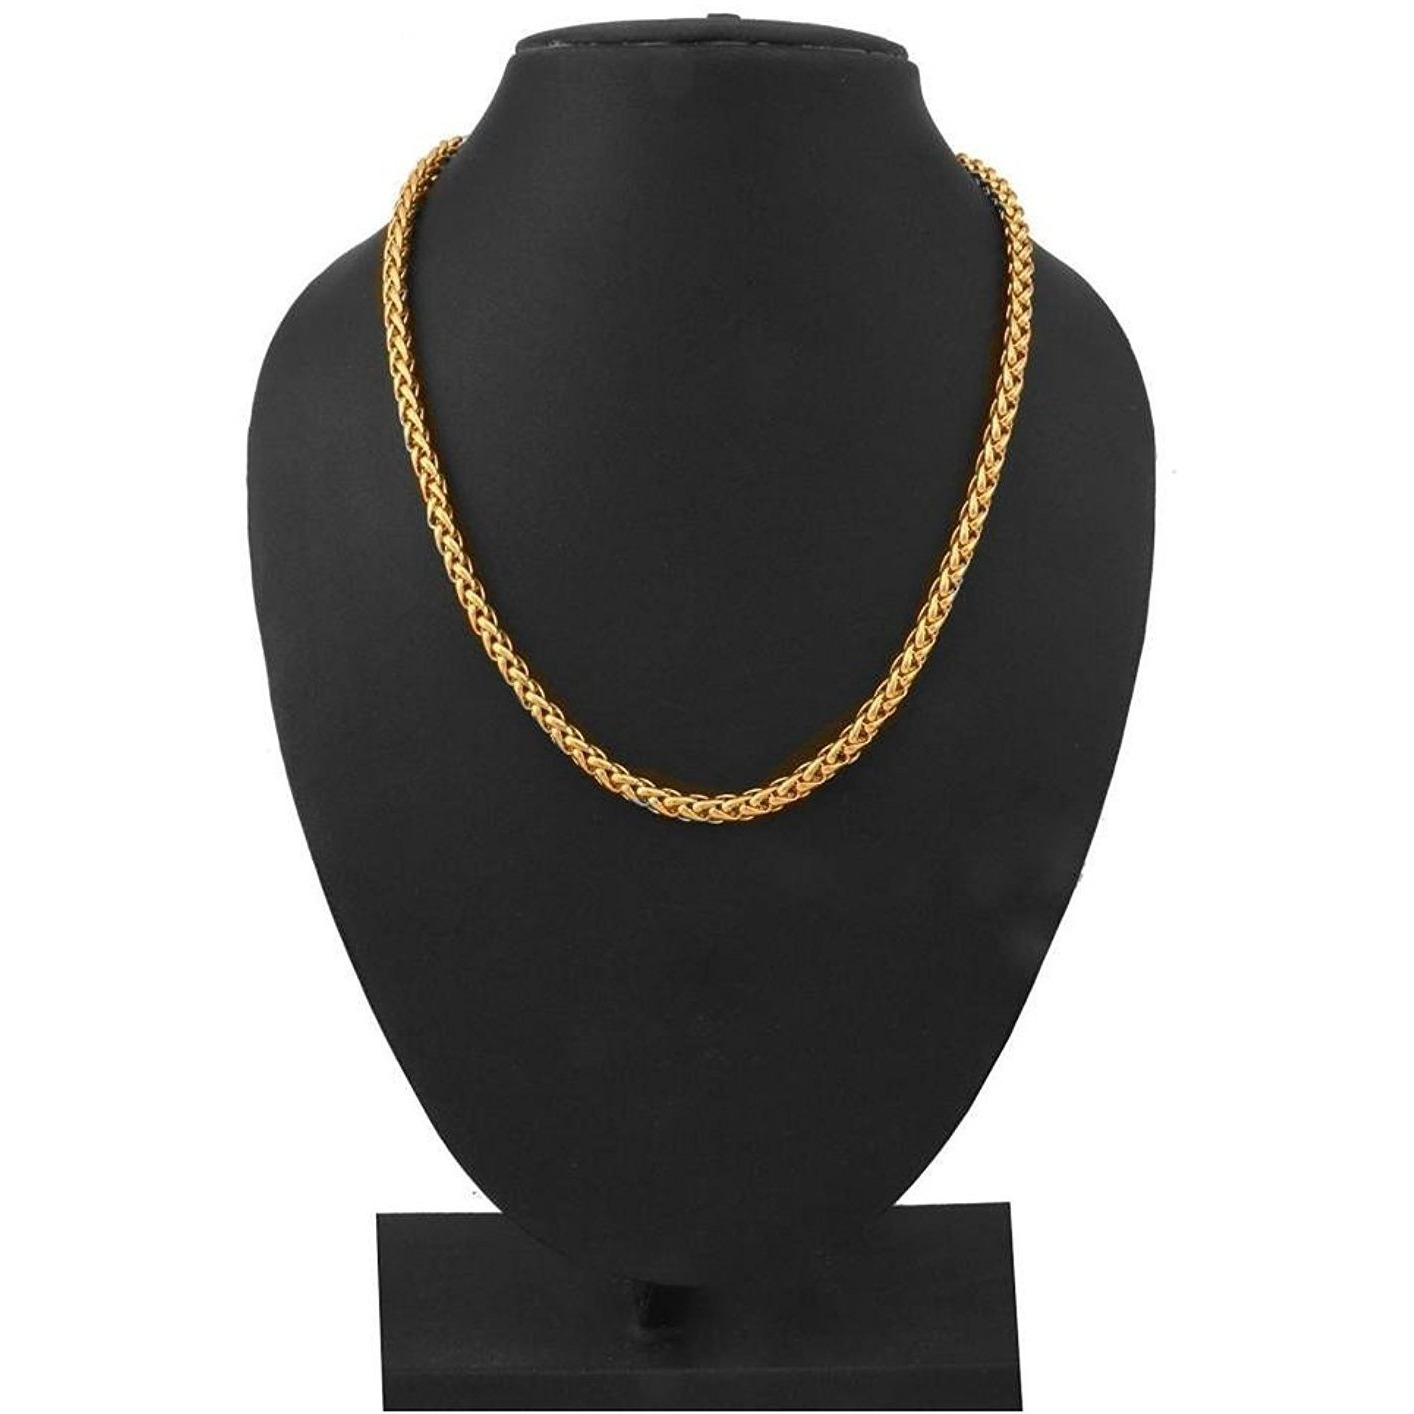 Zivom Gold Plated Wheat Spiga Franco Stainless Steel Chain 21.5